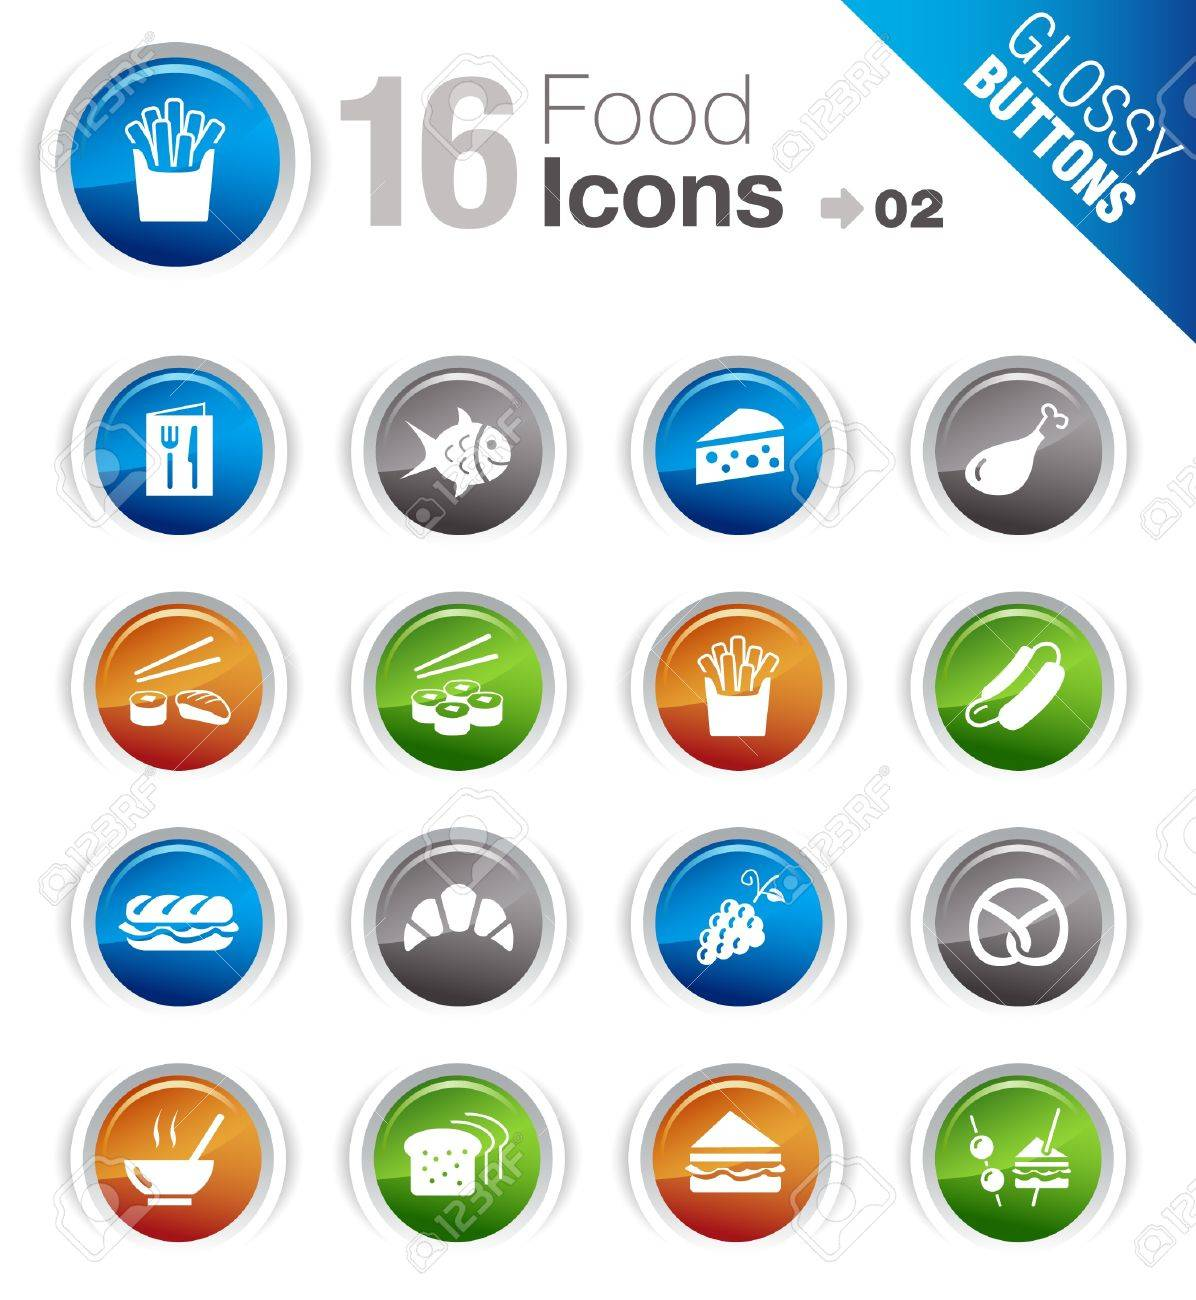 Glossy Buttons - Food Icons Stock Vector - 10443935